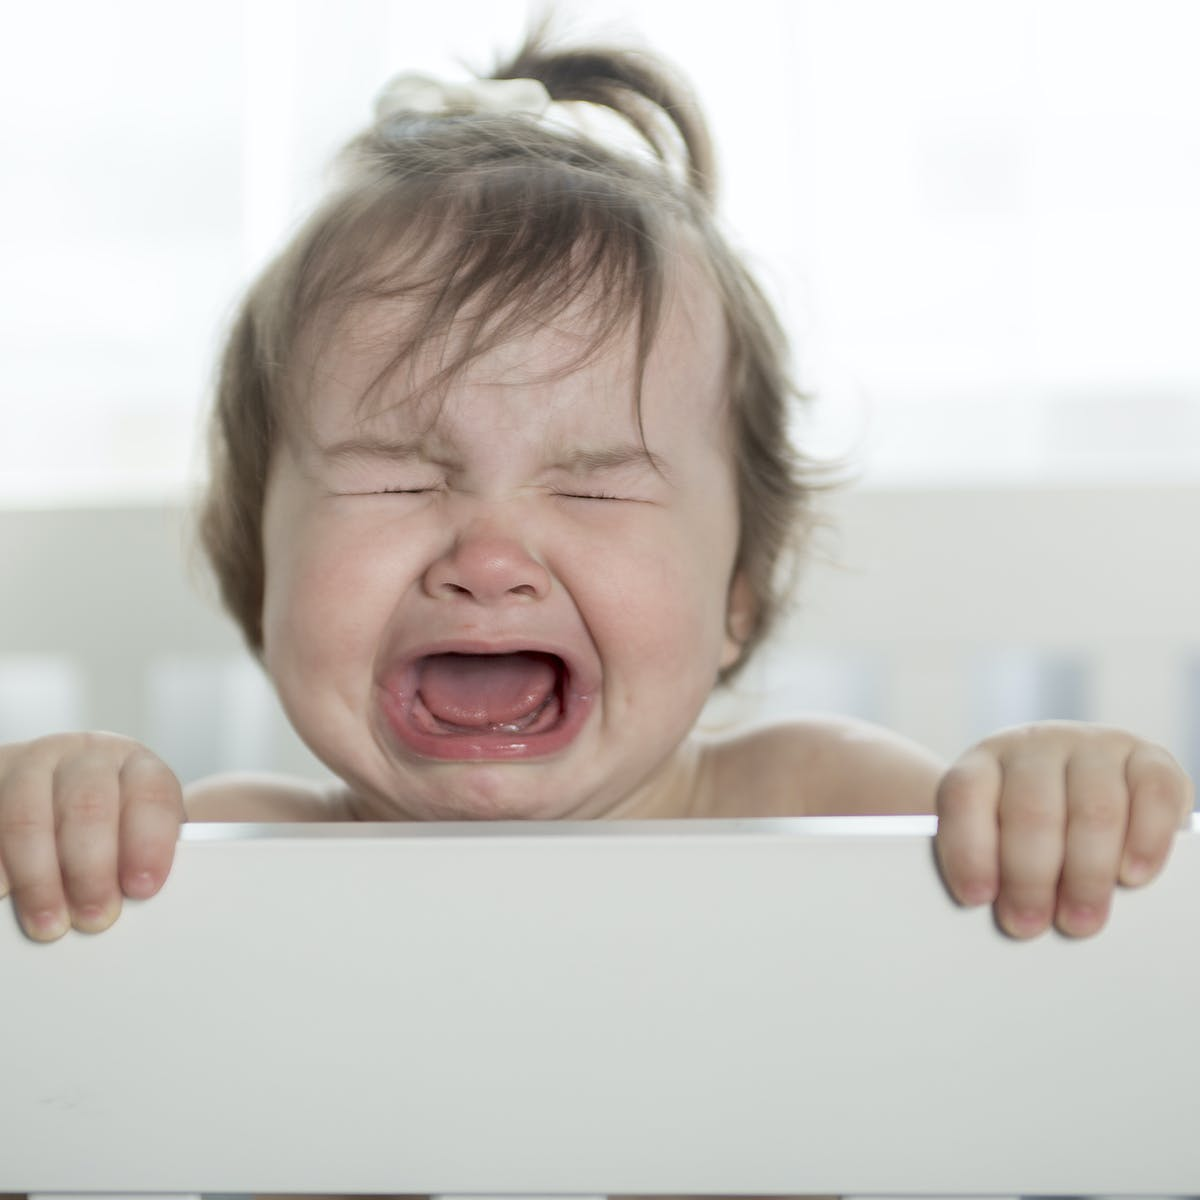 Why it's so hard to ignore a baby's cry, according to science